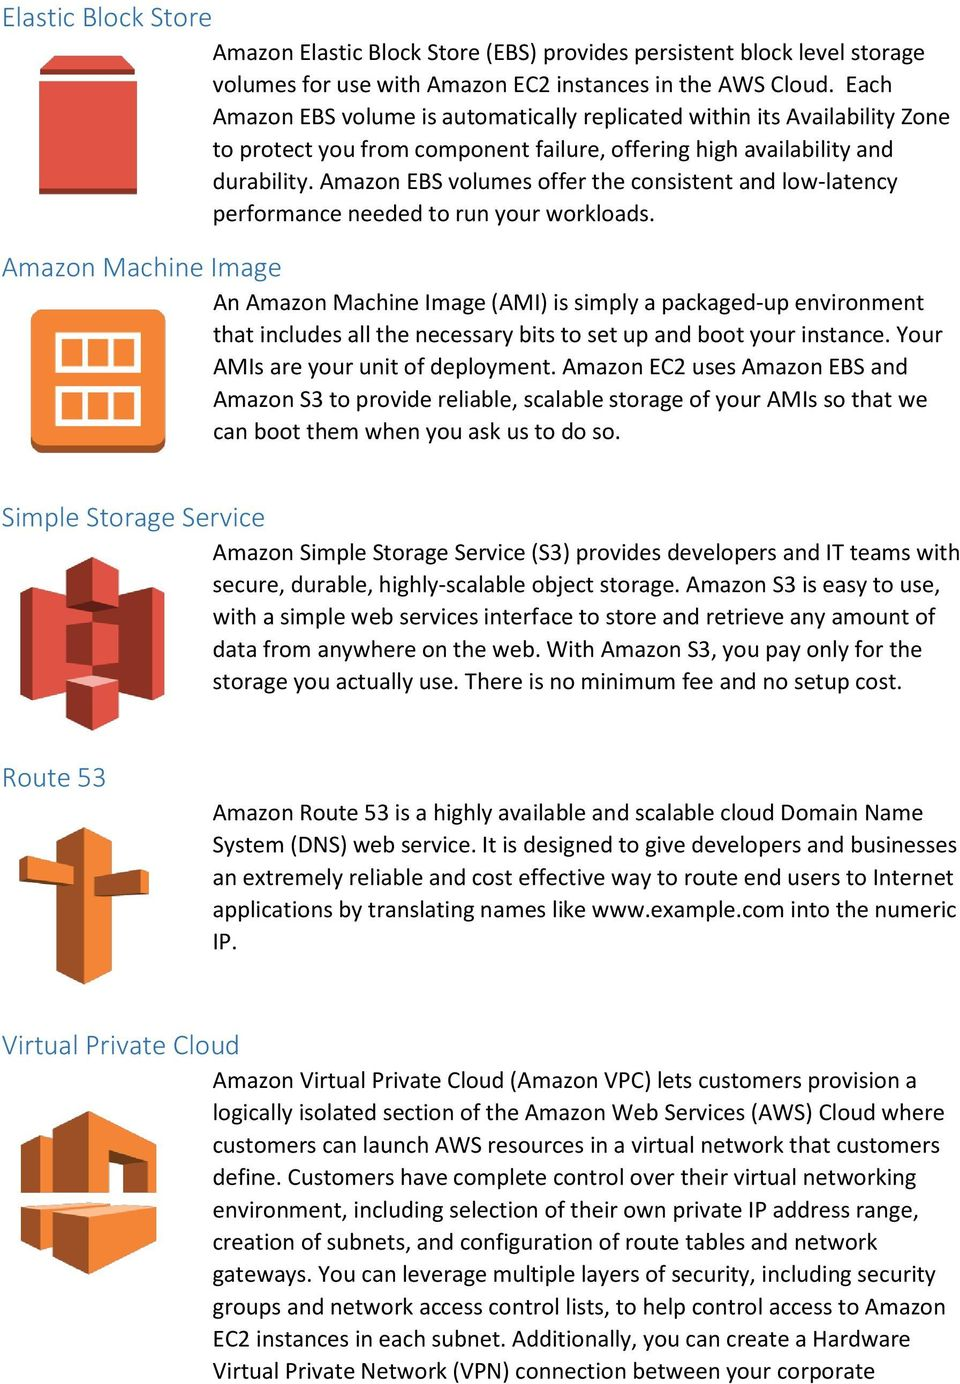 aws security best practices pdf